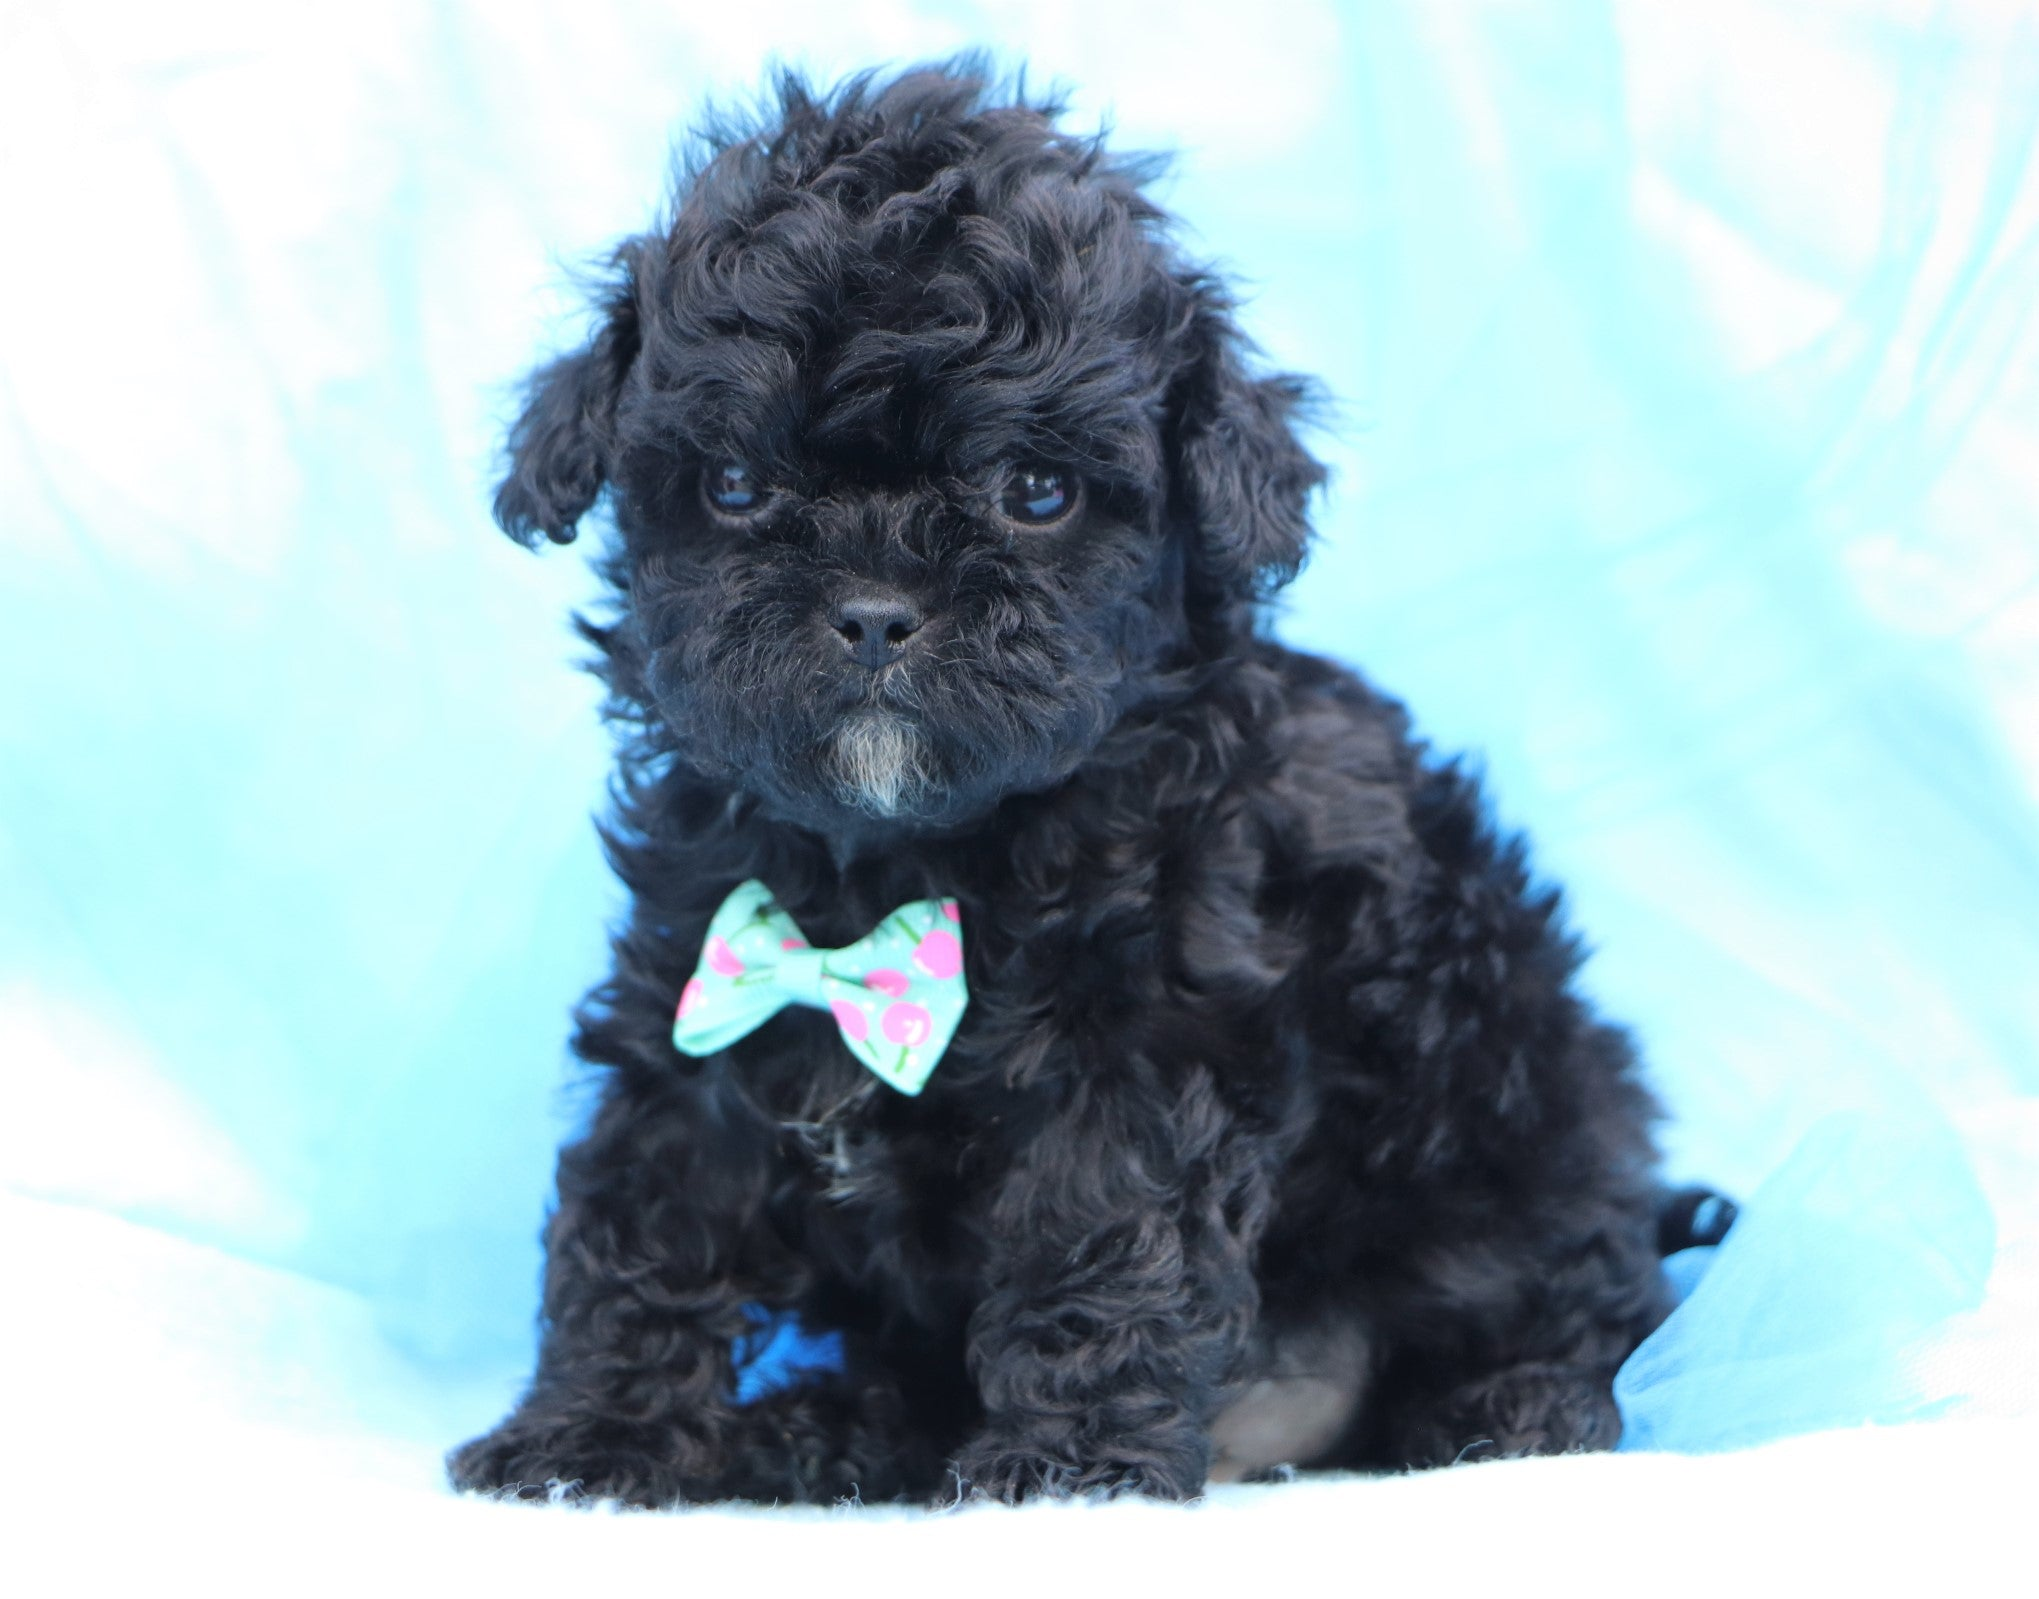 *RESERVED* Roger Male Teacup Shihpoo Puppy